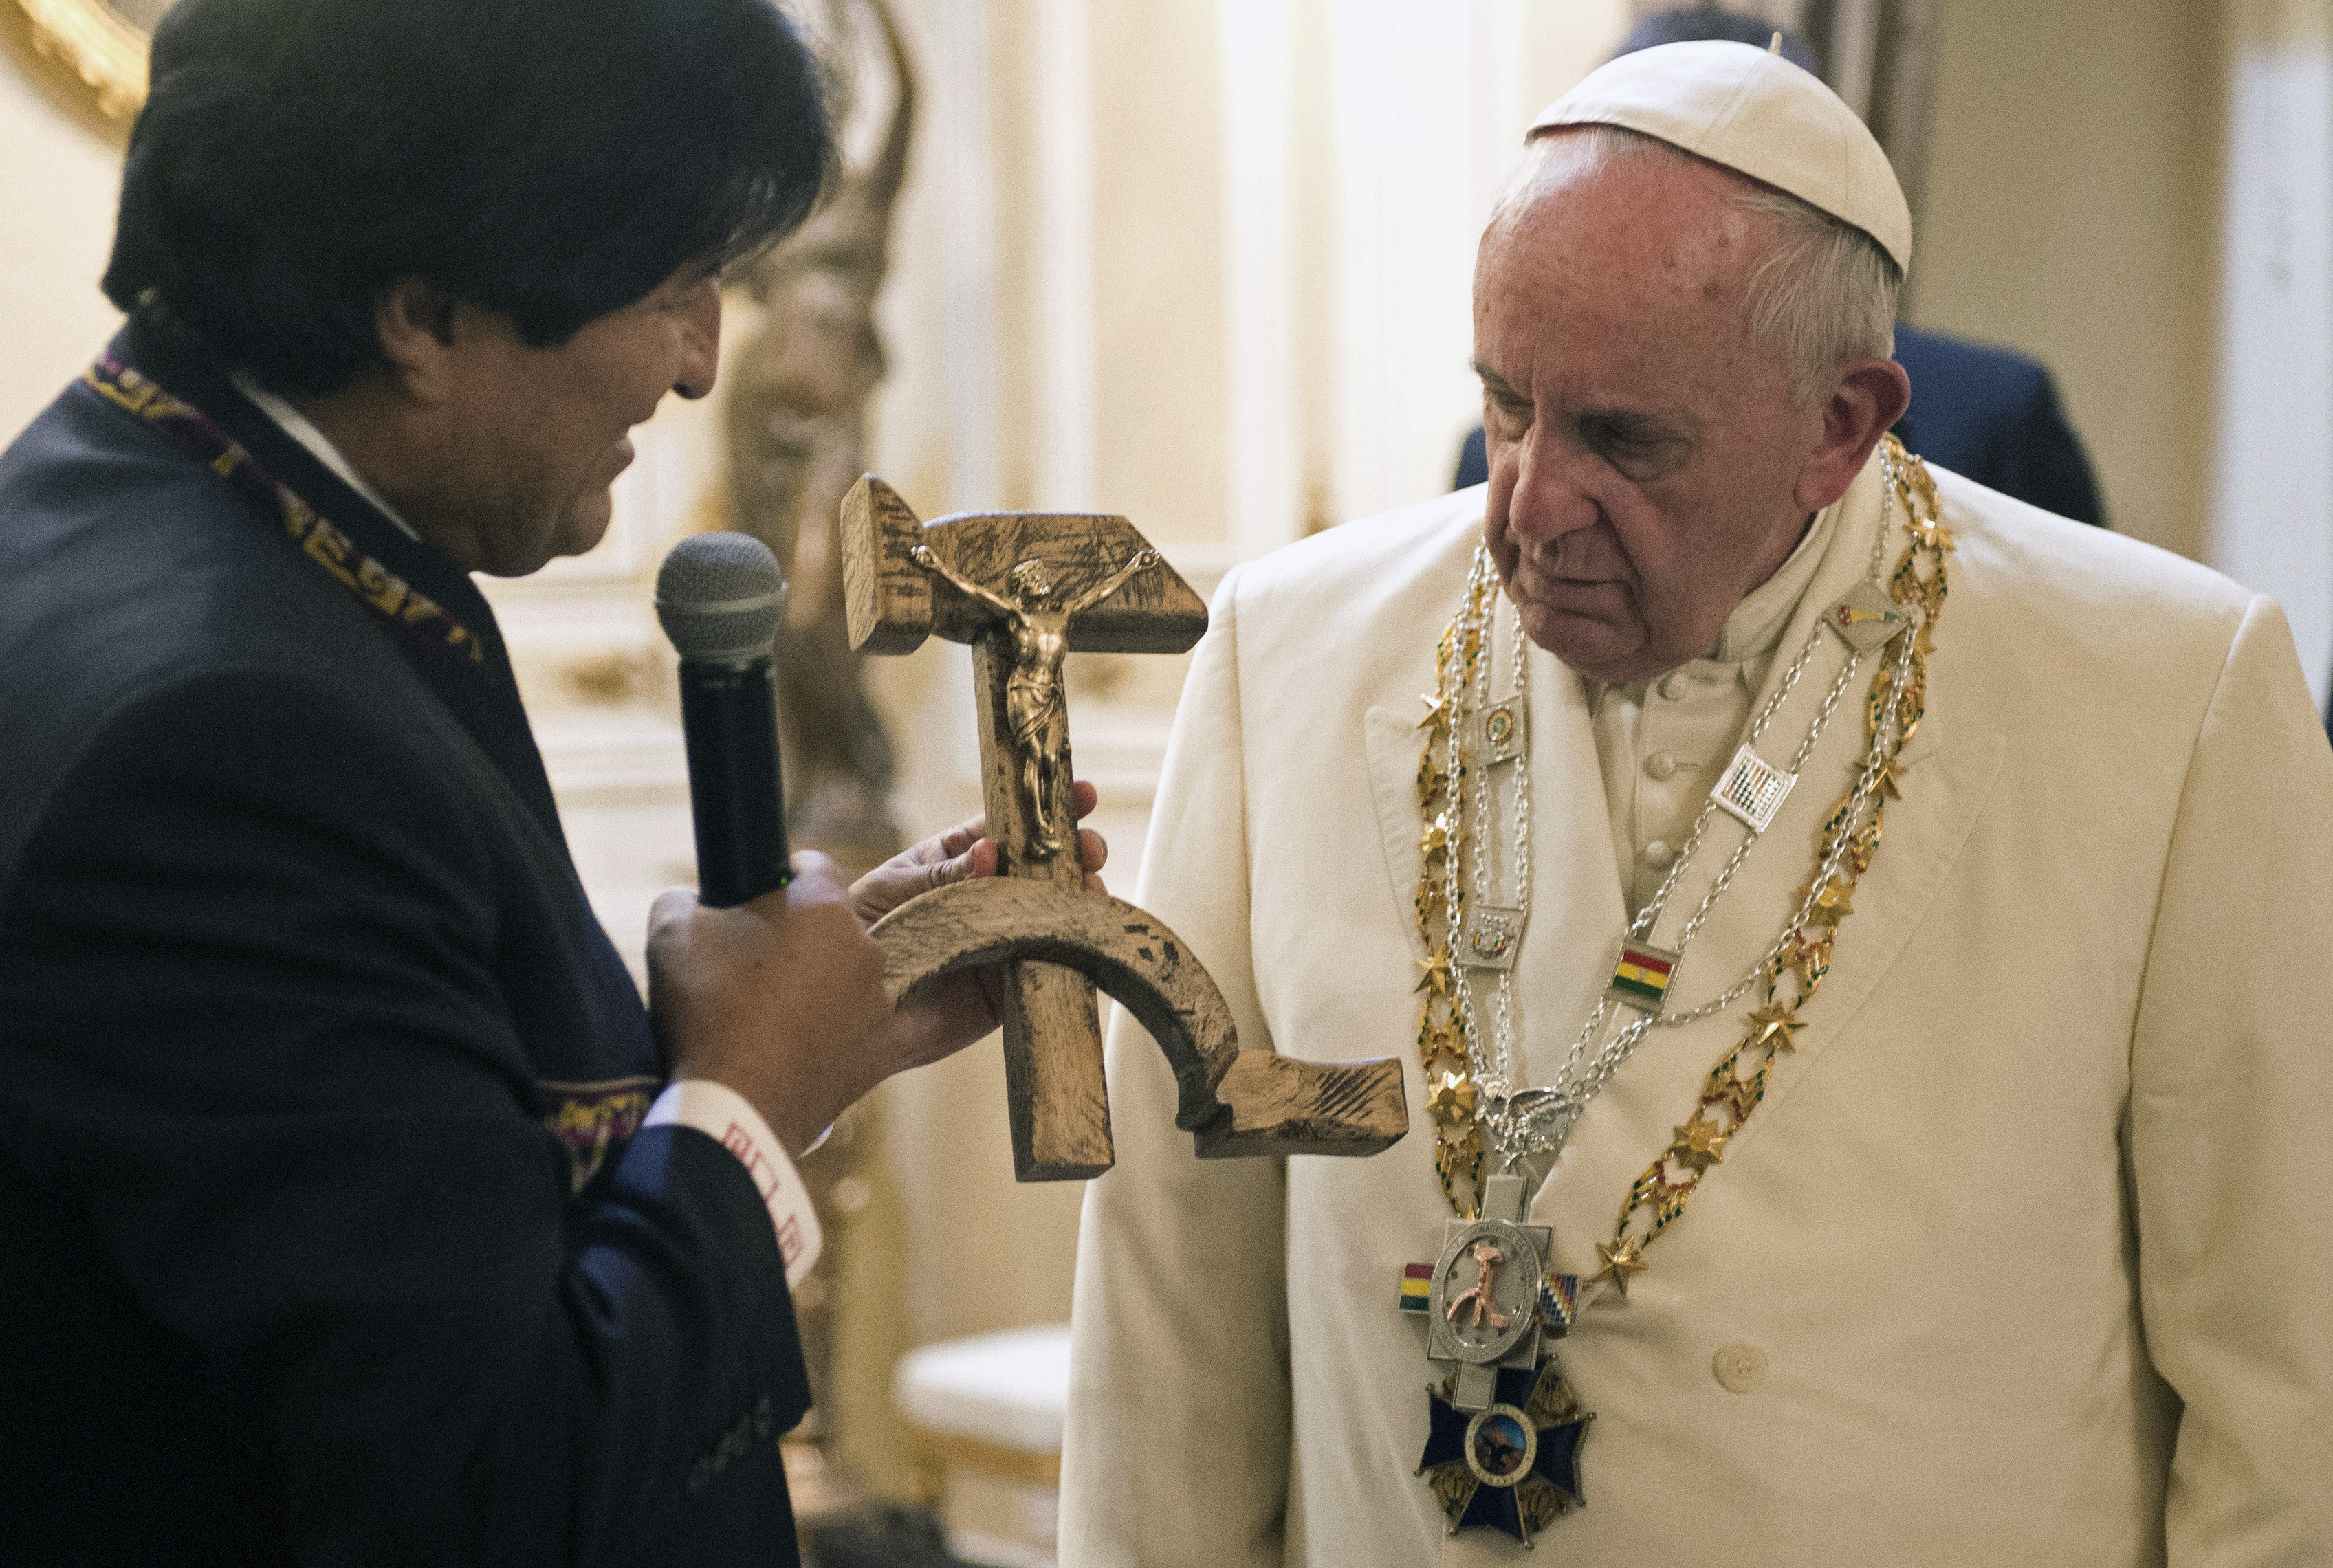 Bolivian President Evo Morales presents Pope Francis with a crucifix carved into a wooden hammer and sickle, in La Paz, Bolivia, on July 8, 2015.